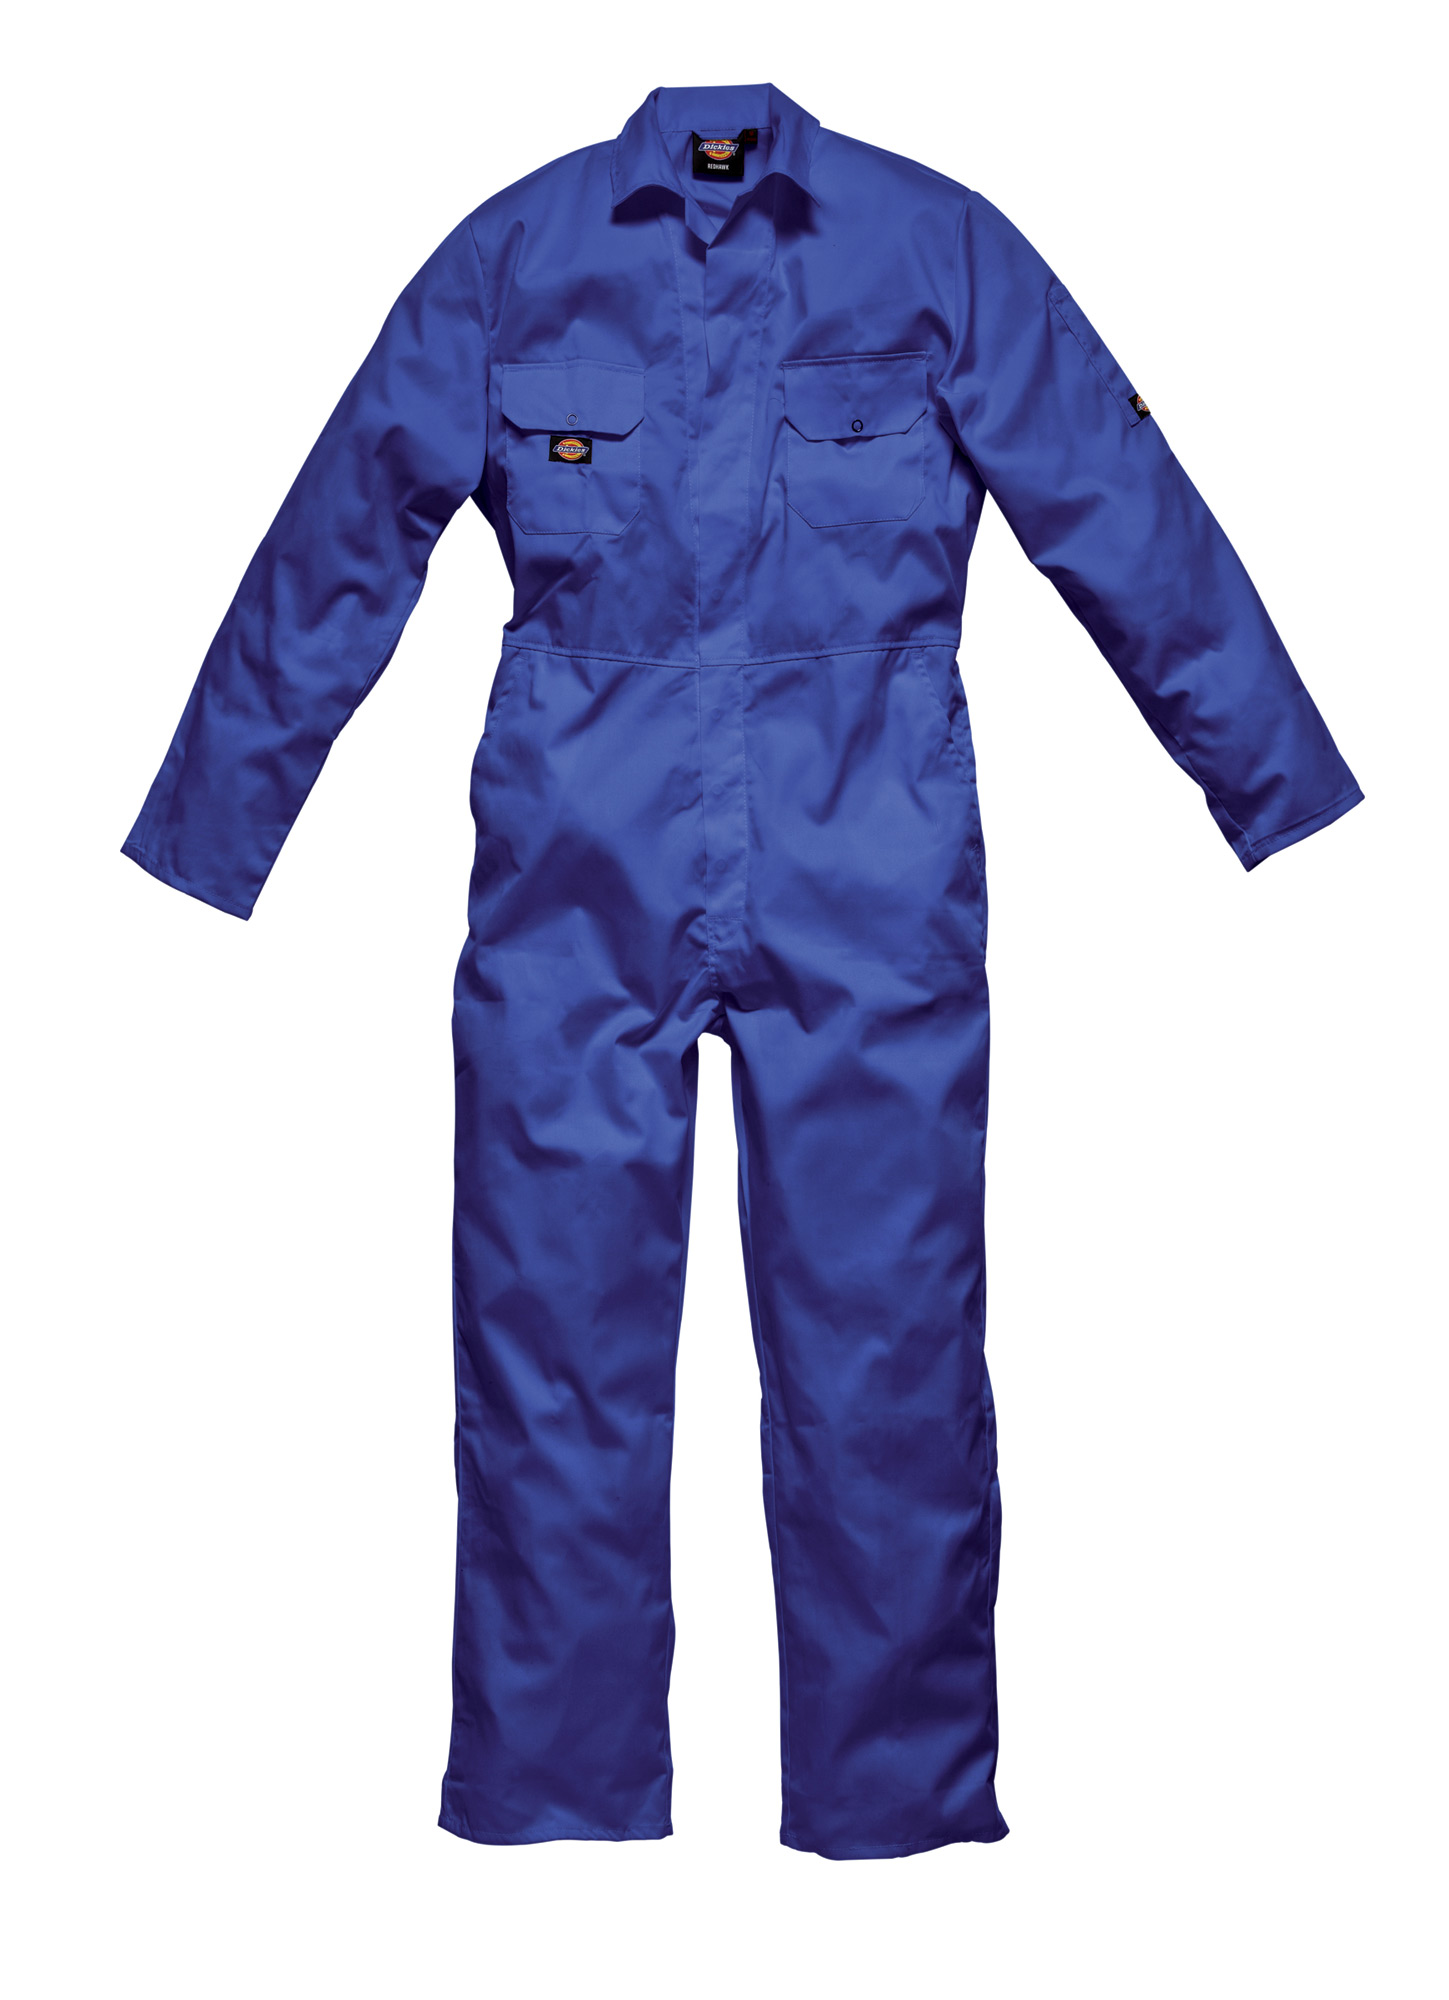 Overalls Are Making A Comeback As The Latest Fashion Trend: Dickies WD4819 Button Up Overalls